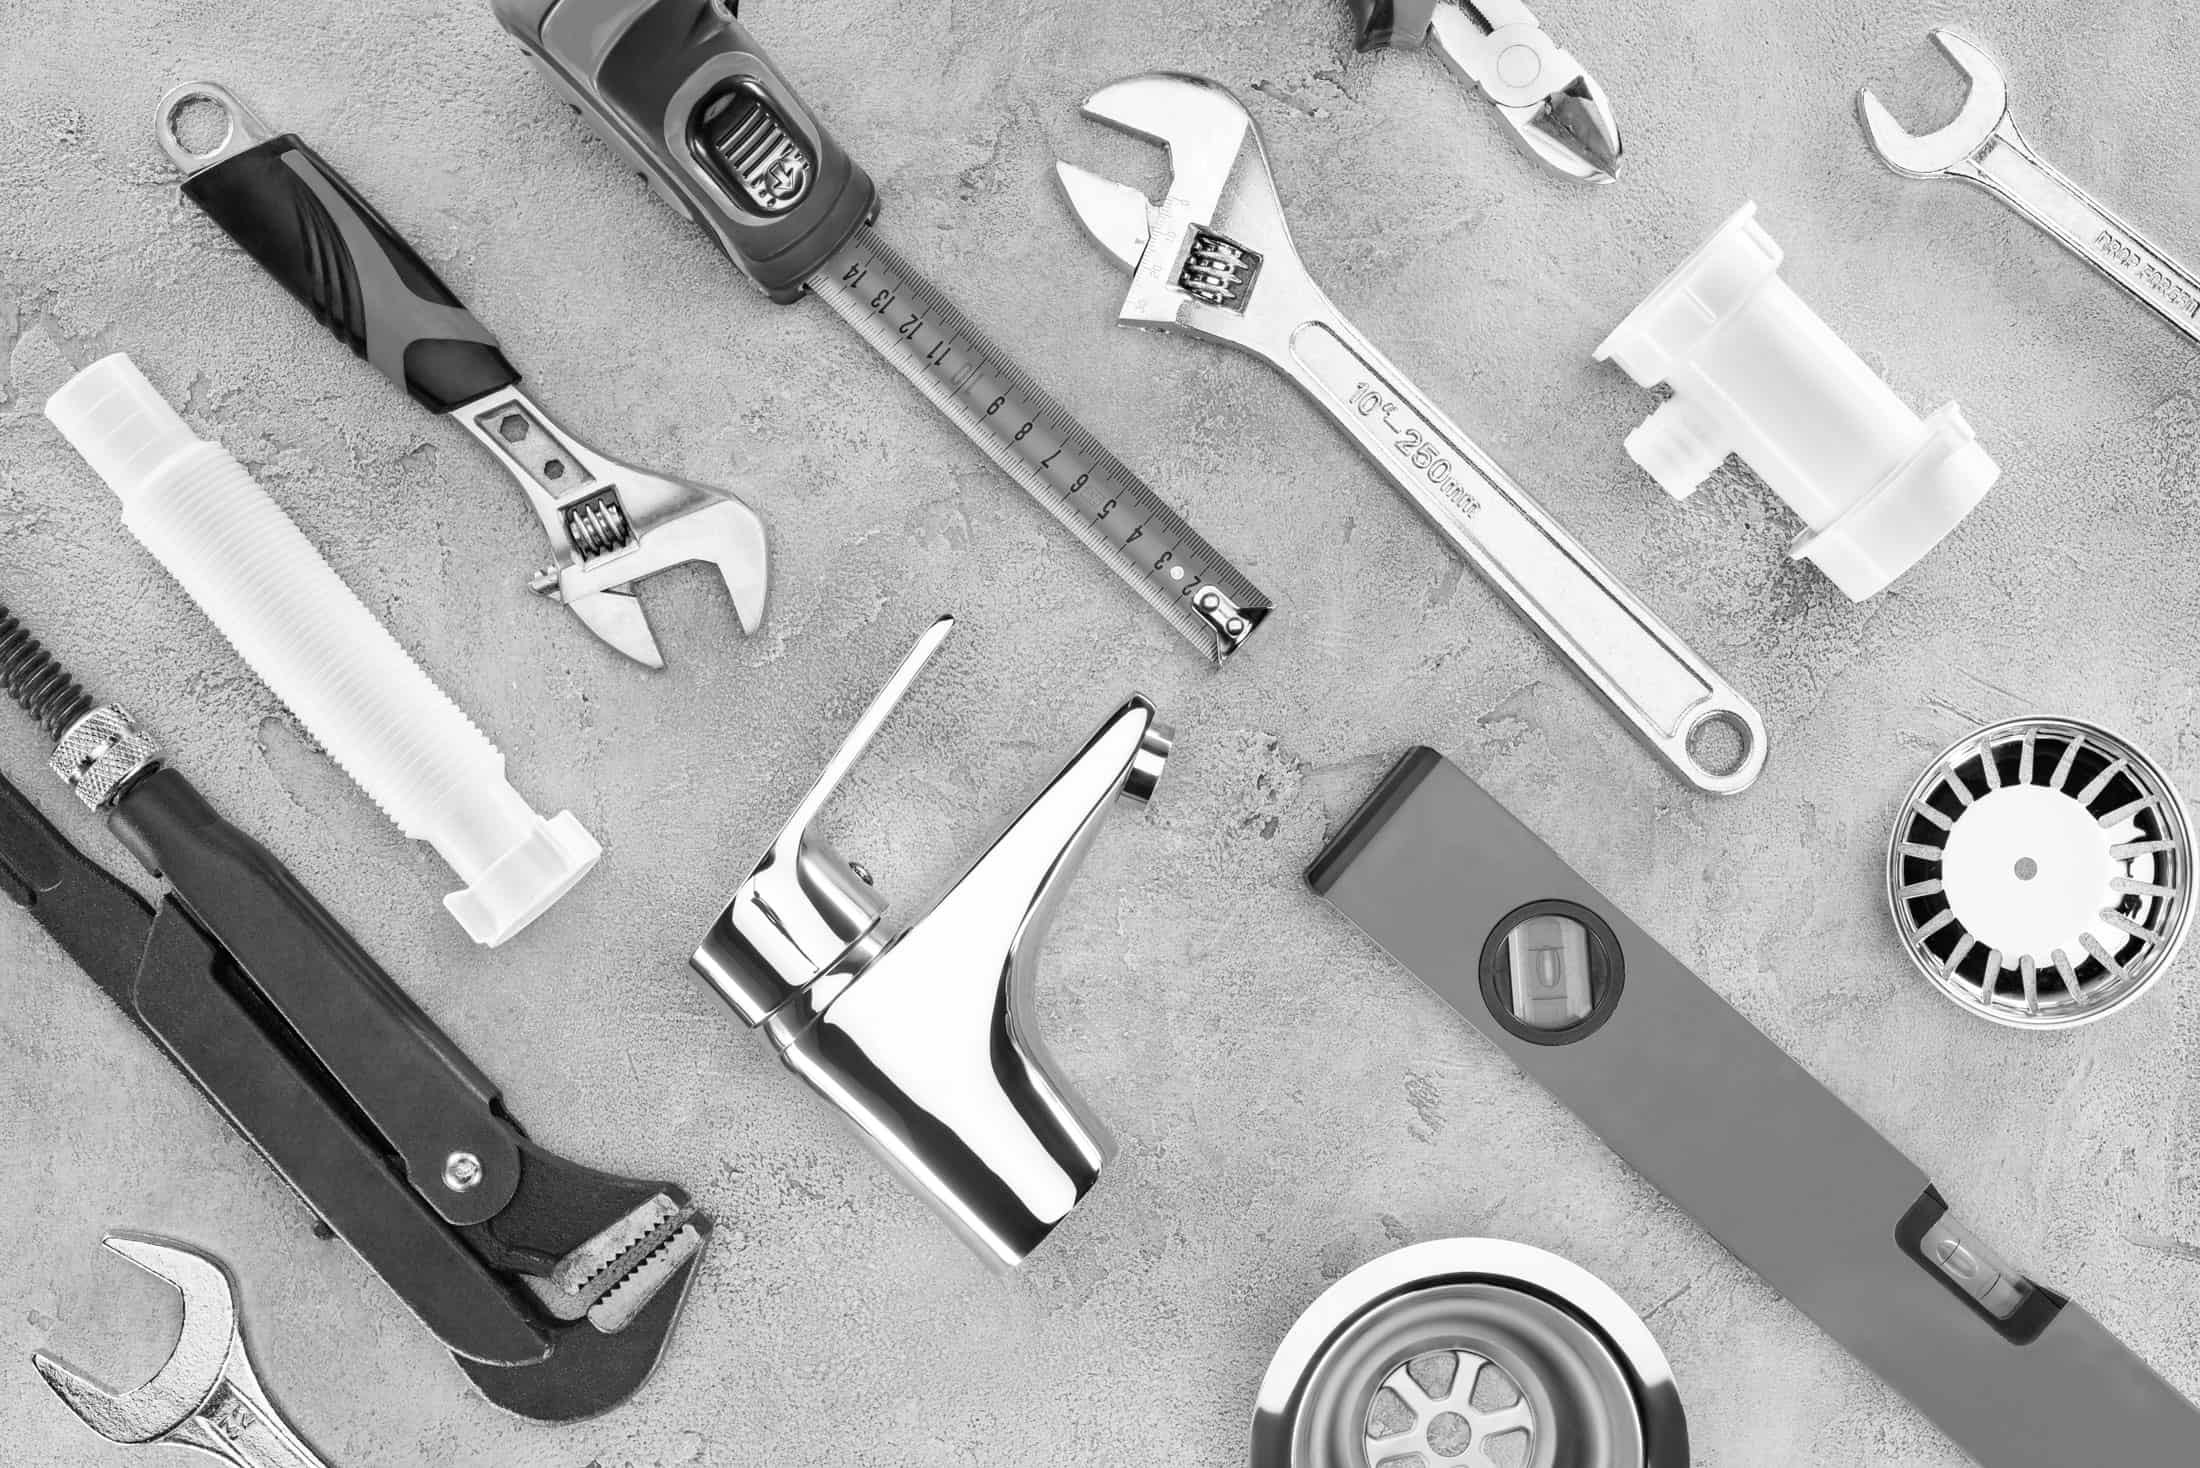 flat-lay-with-various-plumbing-tools-on-concrete-s-77LR4ZY